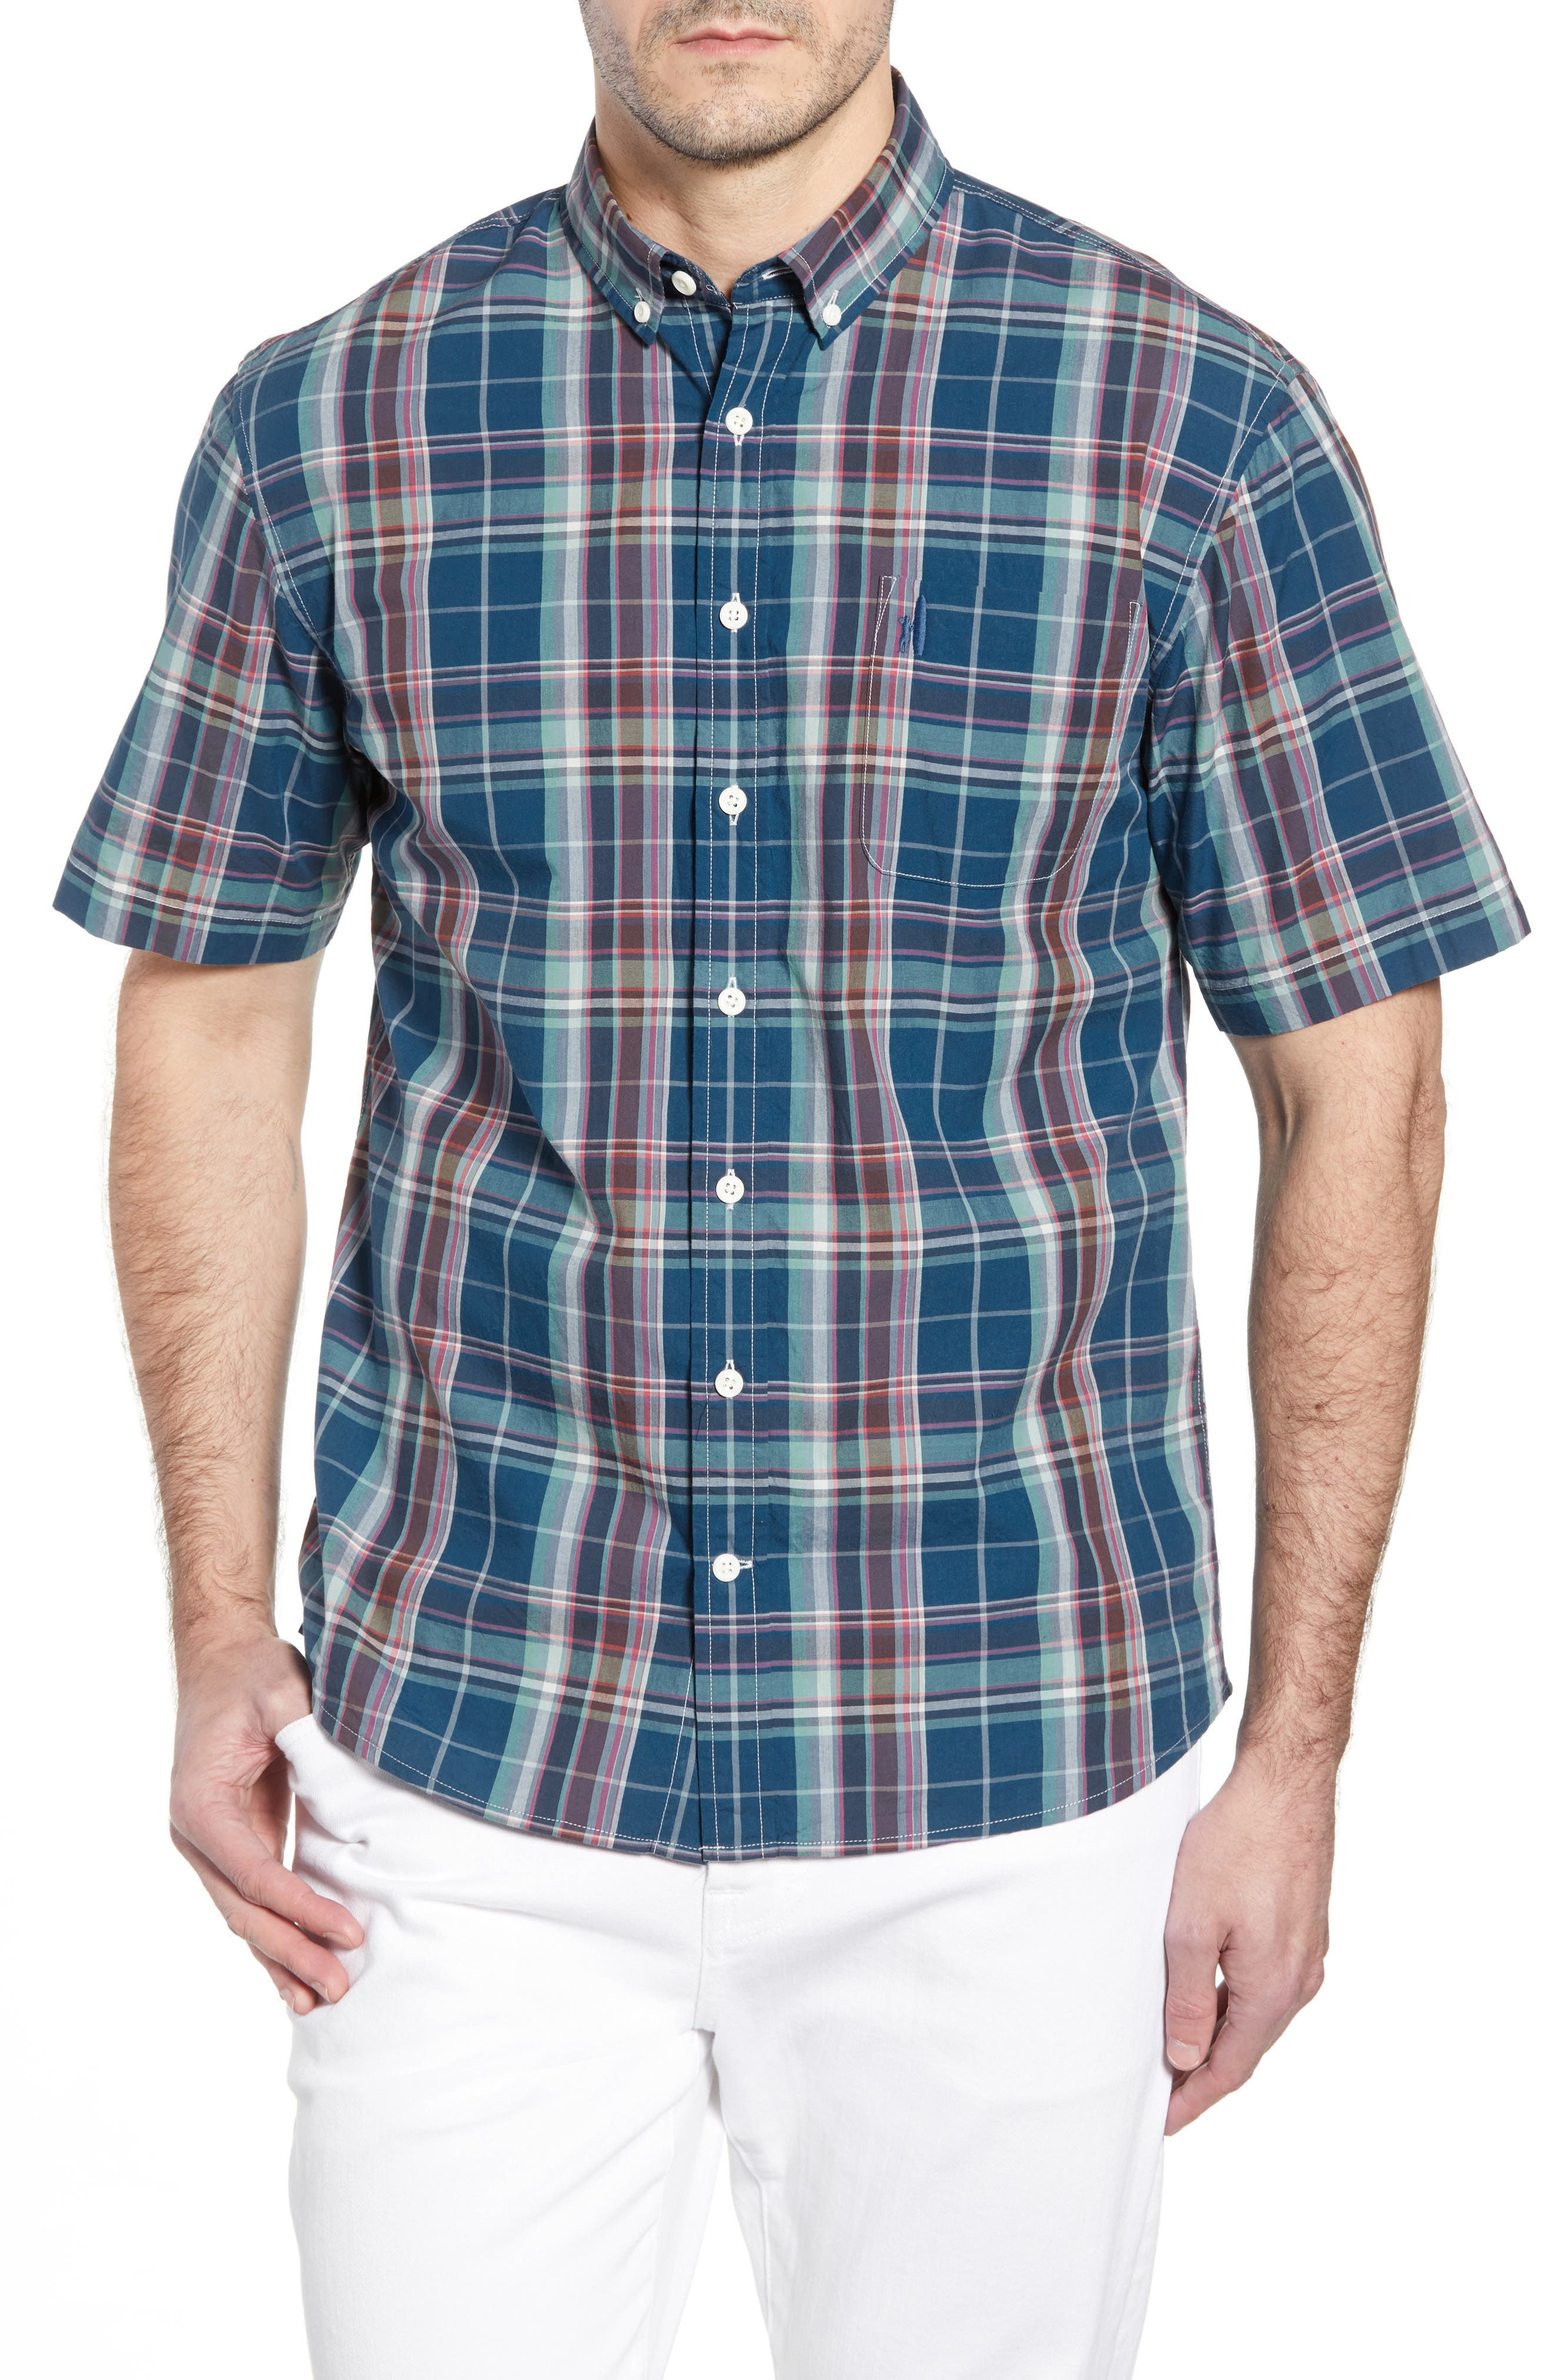 Exum Classic Fit Plaid Sport Shirt,                             Main thumbnail 1, color,                             LAKE